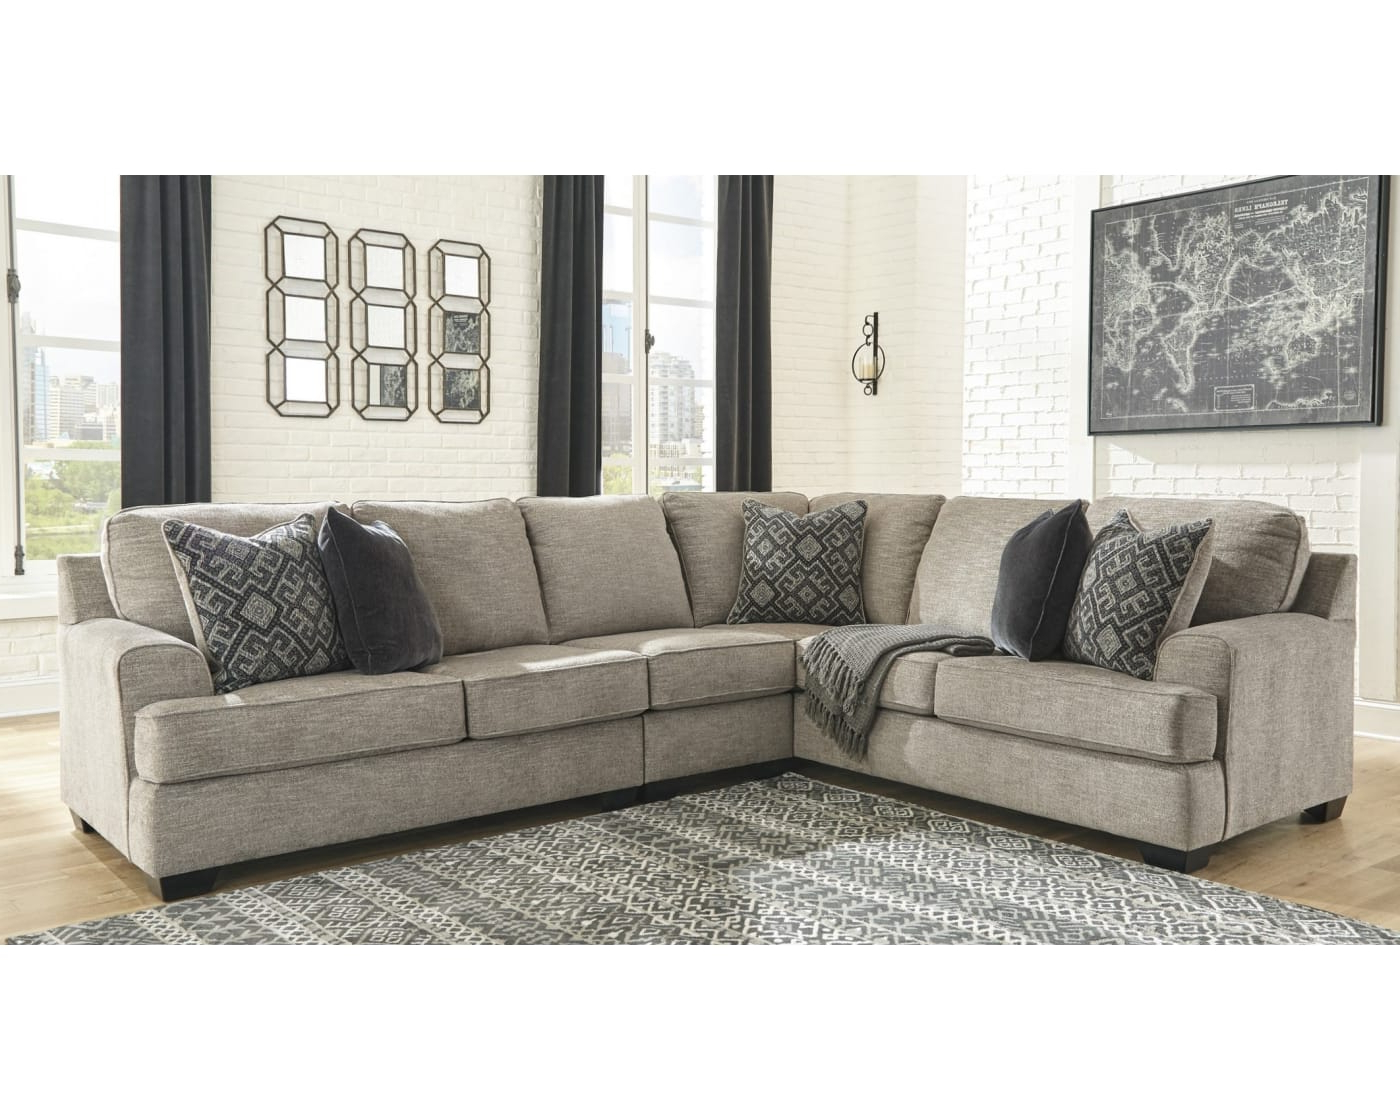 Bovarian Stone 3 Piece Right Facing Sectional Sofa Inside Newest Dulce Right Sectional Sofas Twill Stone (View 5 of 20)